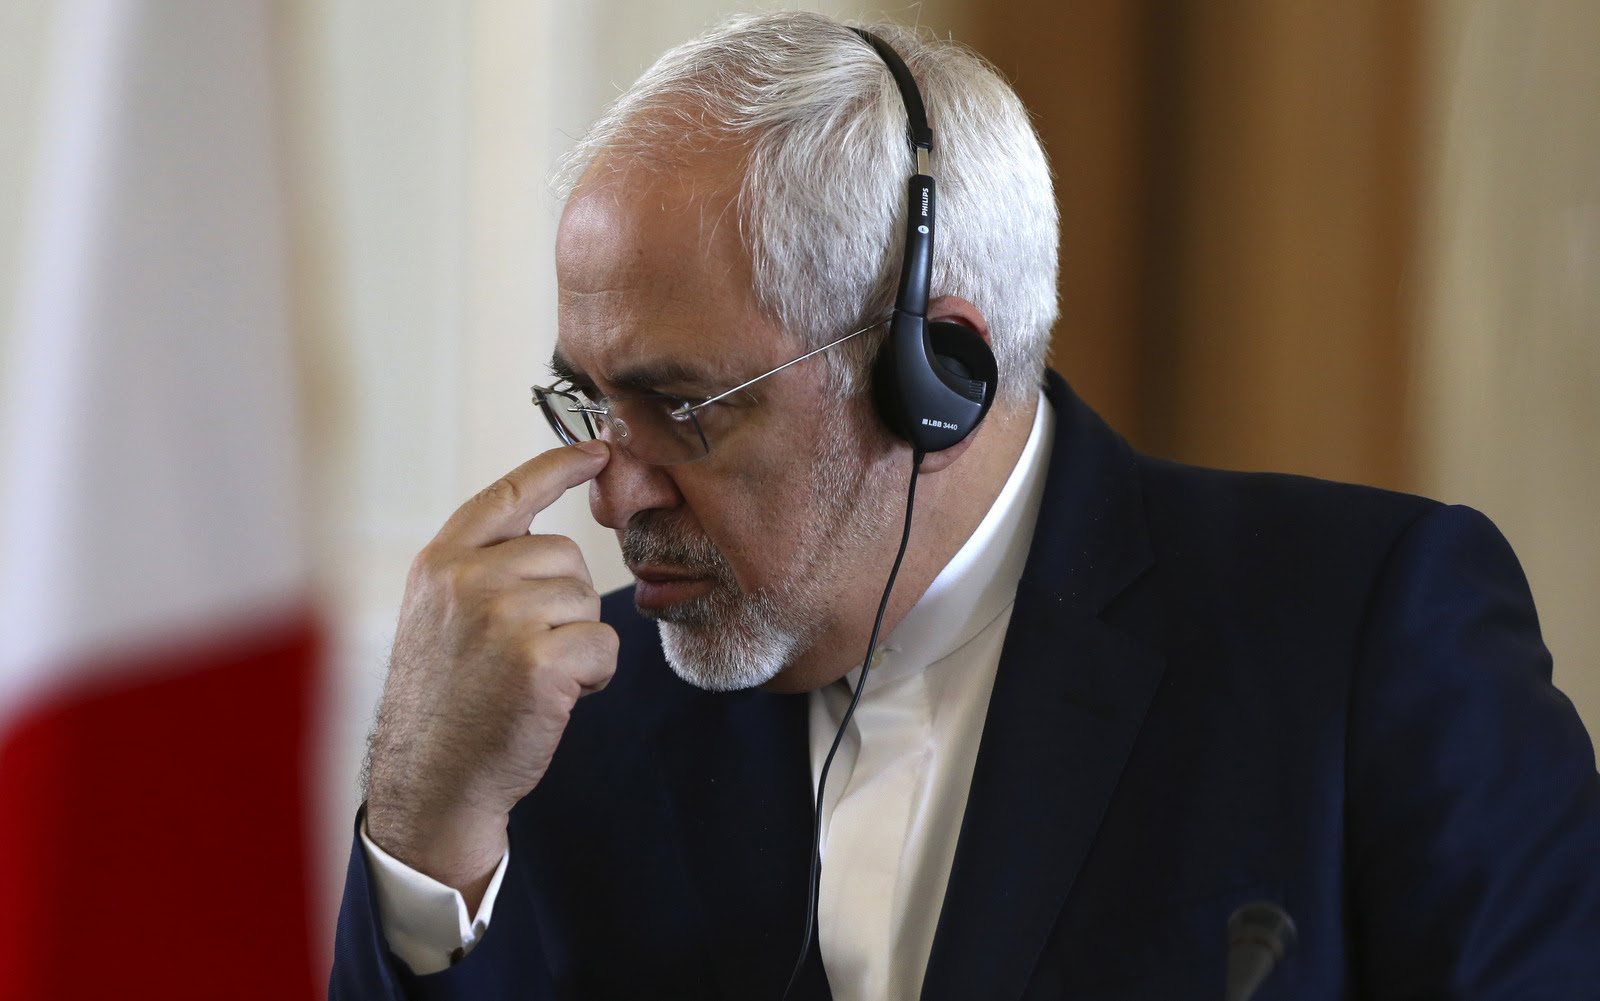 Iranian Foreign Minister Mohammad Javad Zarif pauses while listening to a translation of his French counterpart Jean-Marc Ayrault during their joint press conference in Tehran, Iran, Jan. 31, 2017.(AP/Vahid Salemi)